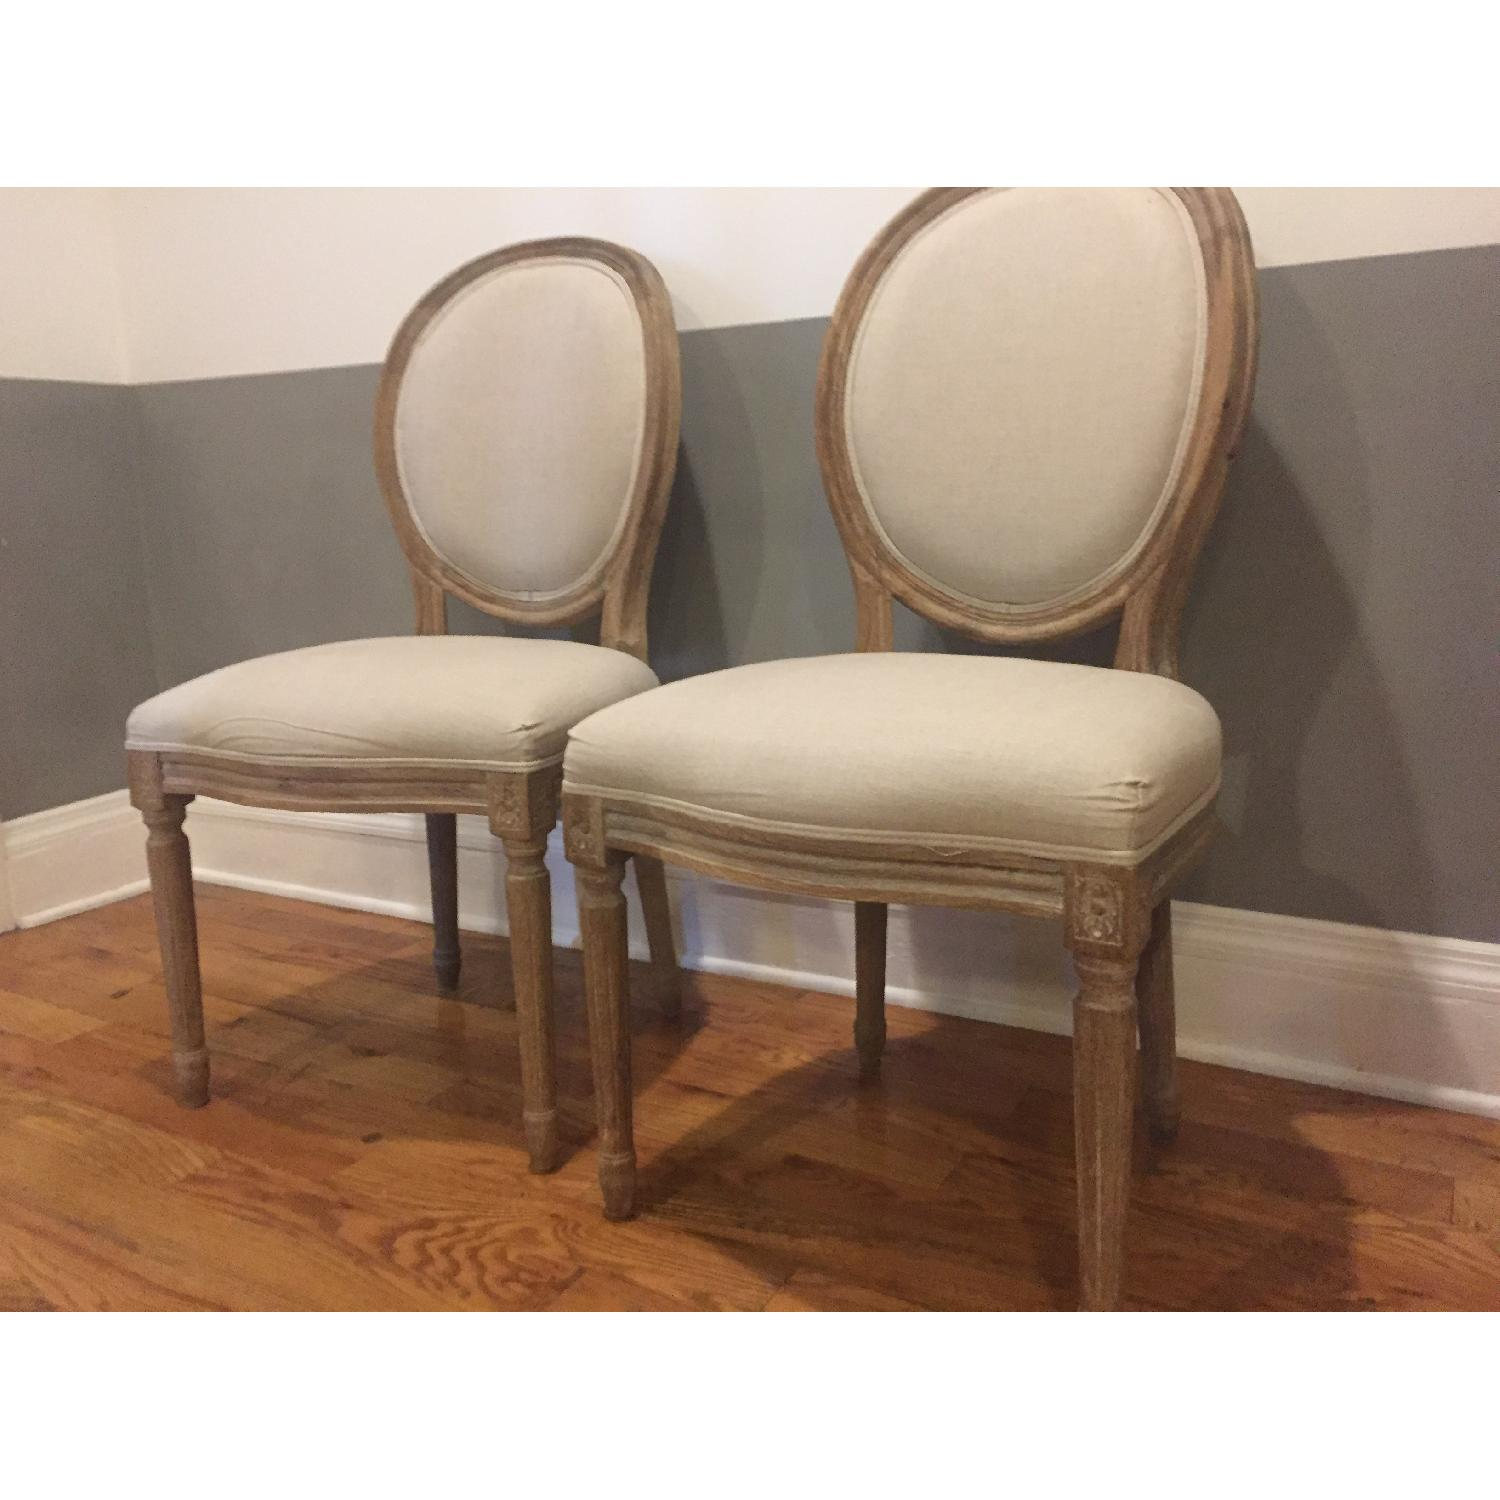 Wisteria Louis XVI Dining Chairs - image-2